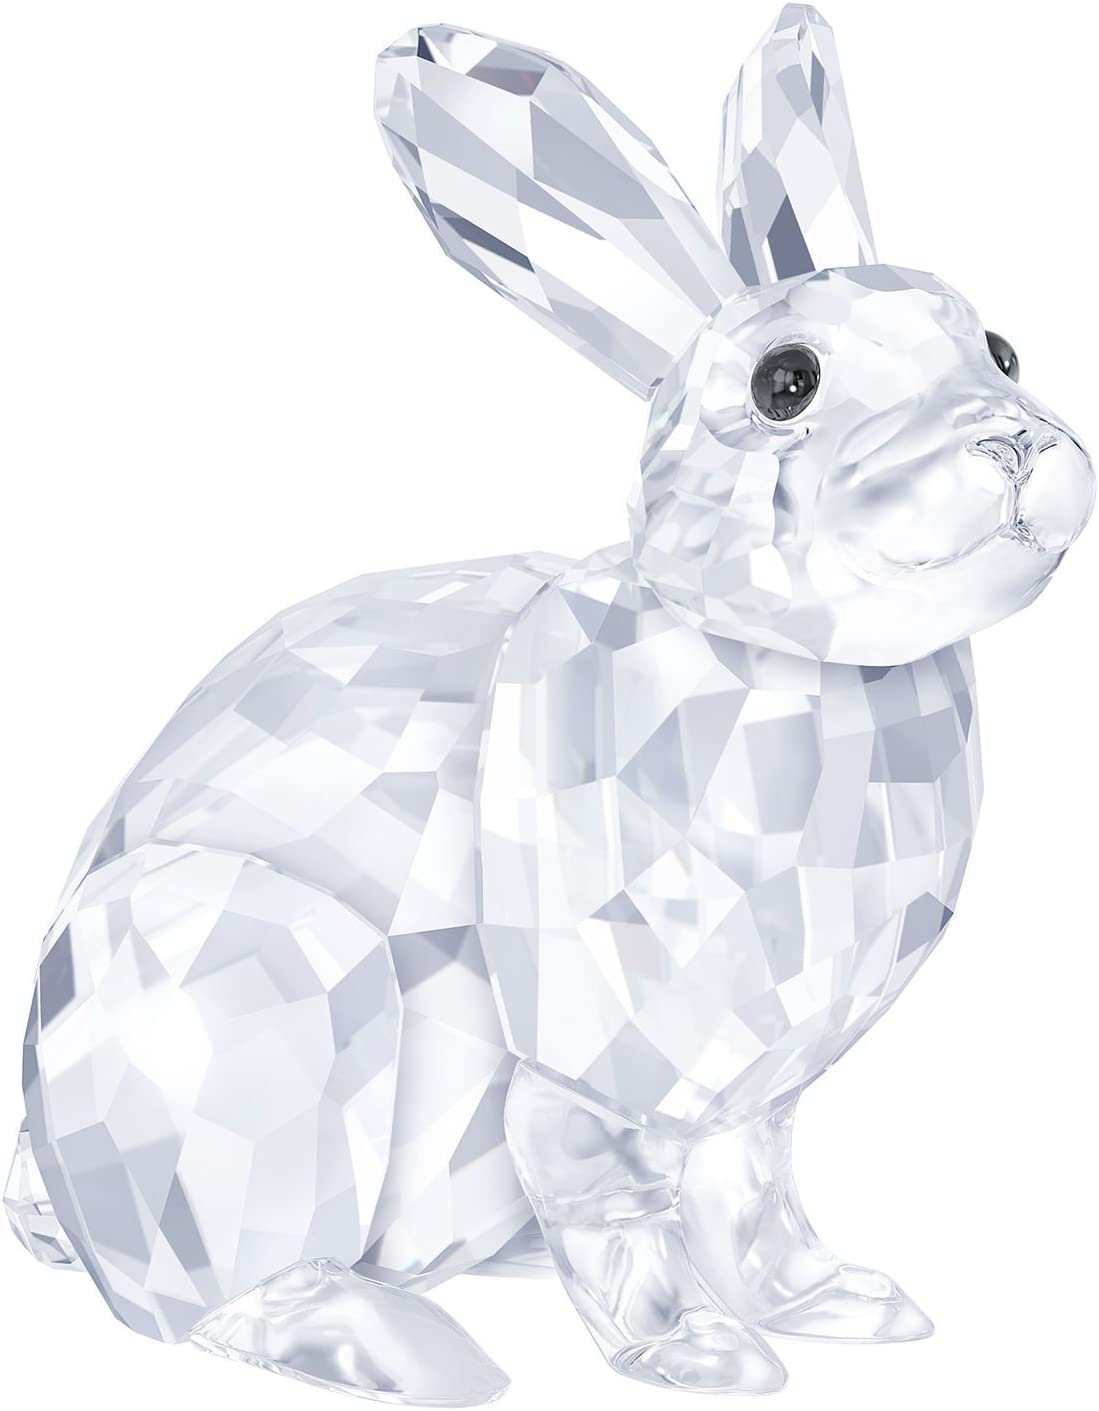 Swarovski Crystal Adorable Sitting Rabbit Easter Bunny Figurine New for 2017 5266232